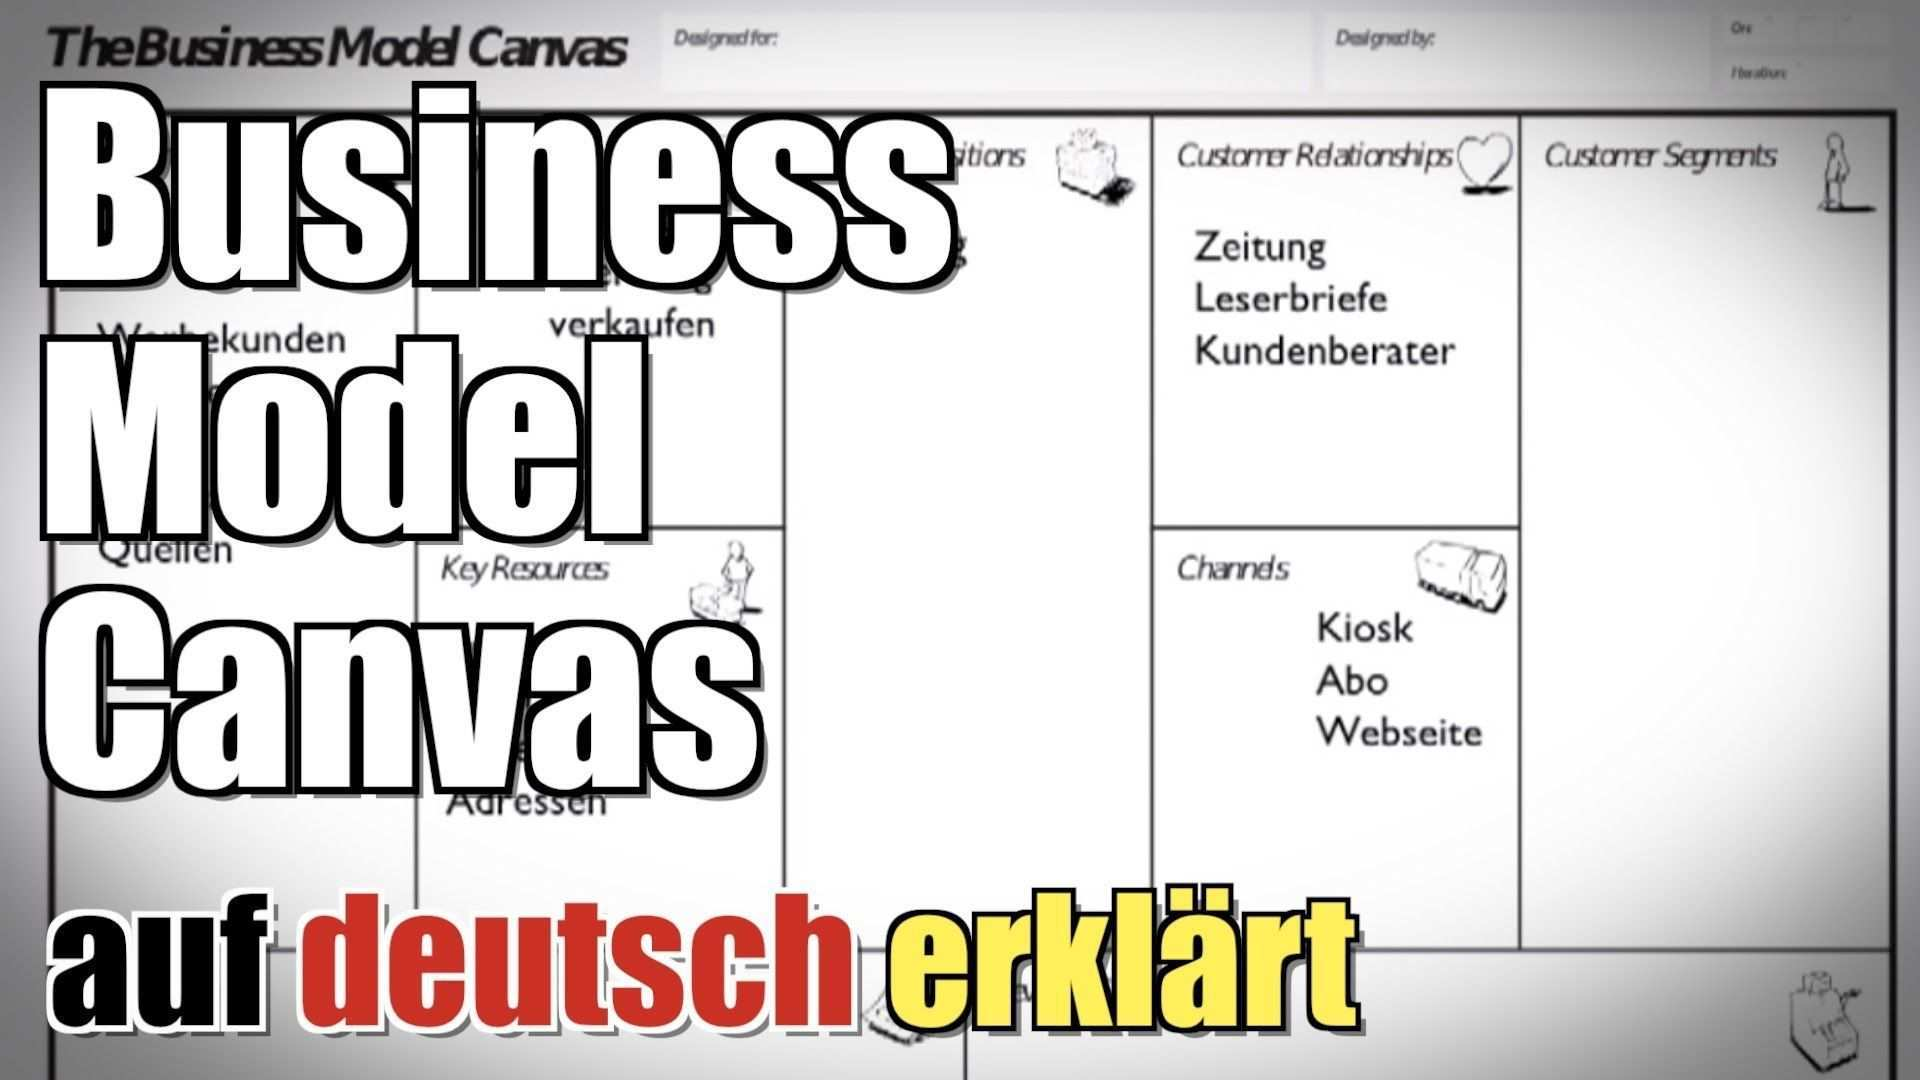 Business Model Canvas Zeitung Auf Deutsch Erklart